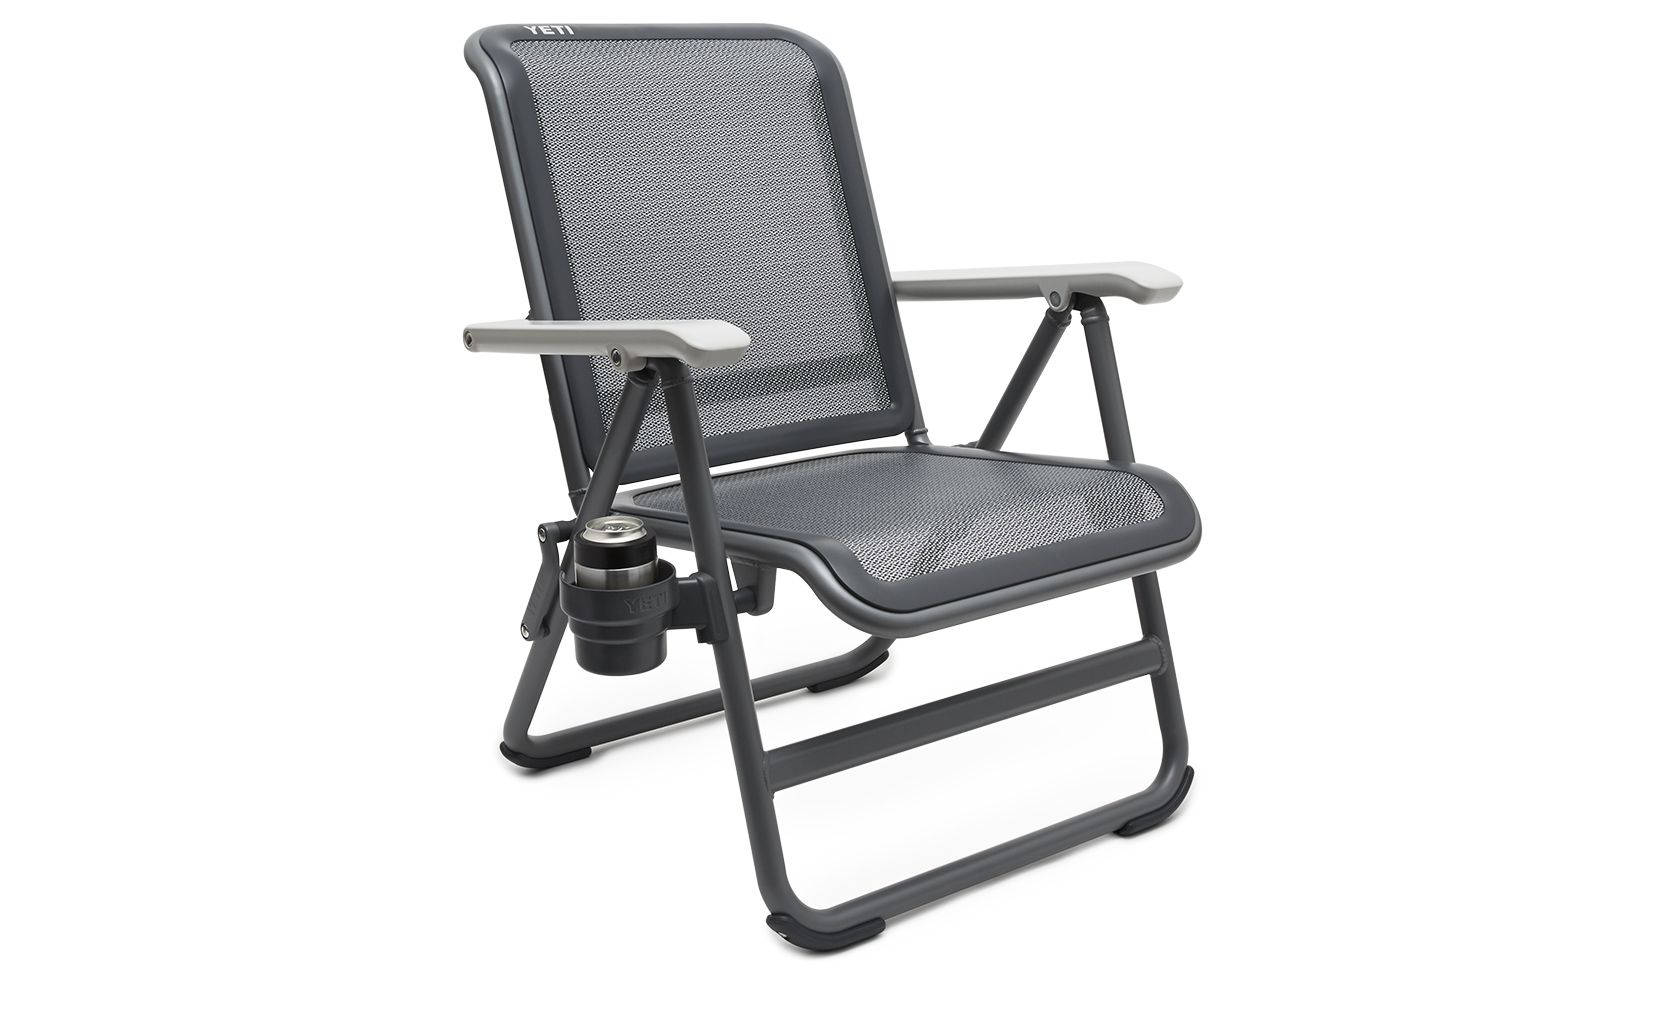 Hondo base camp chair camping chairs outdoor chairs chair